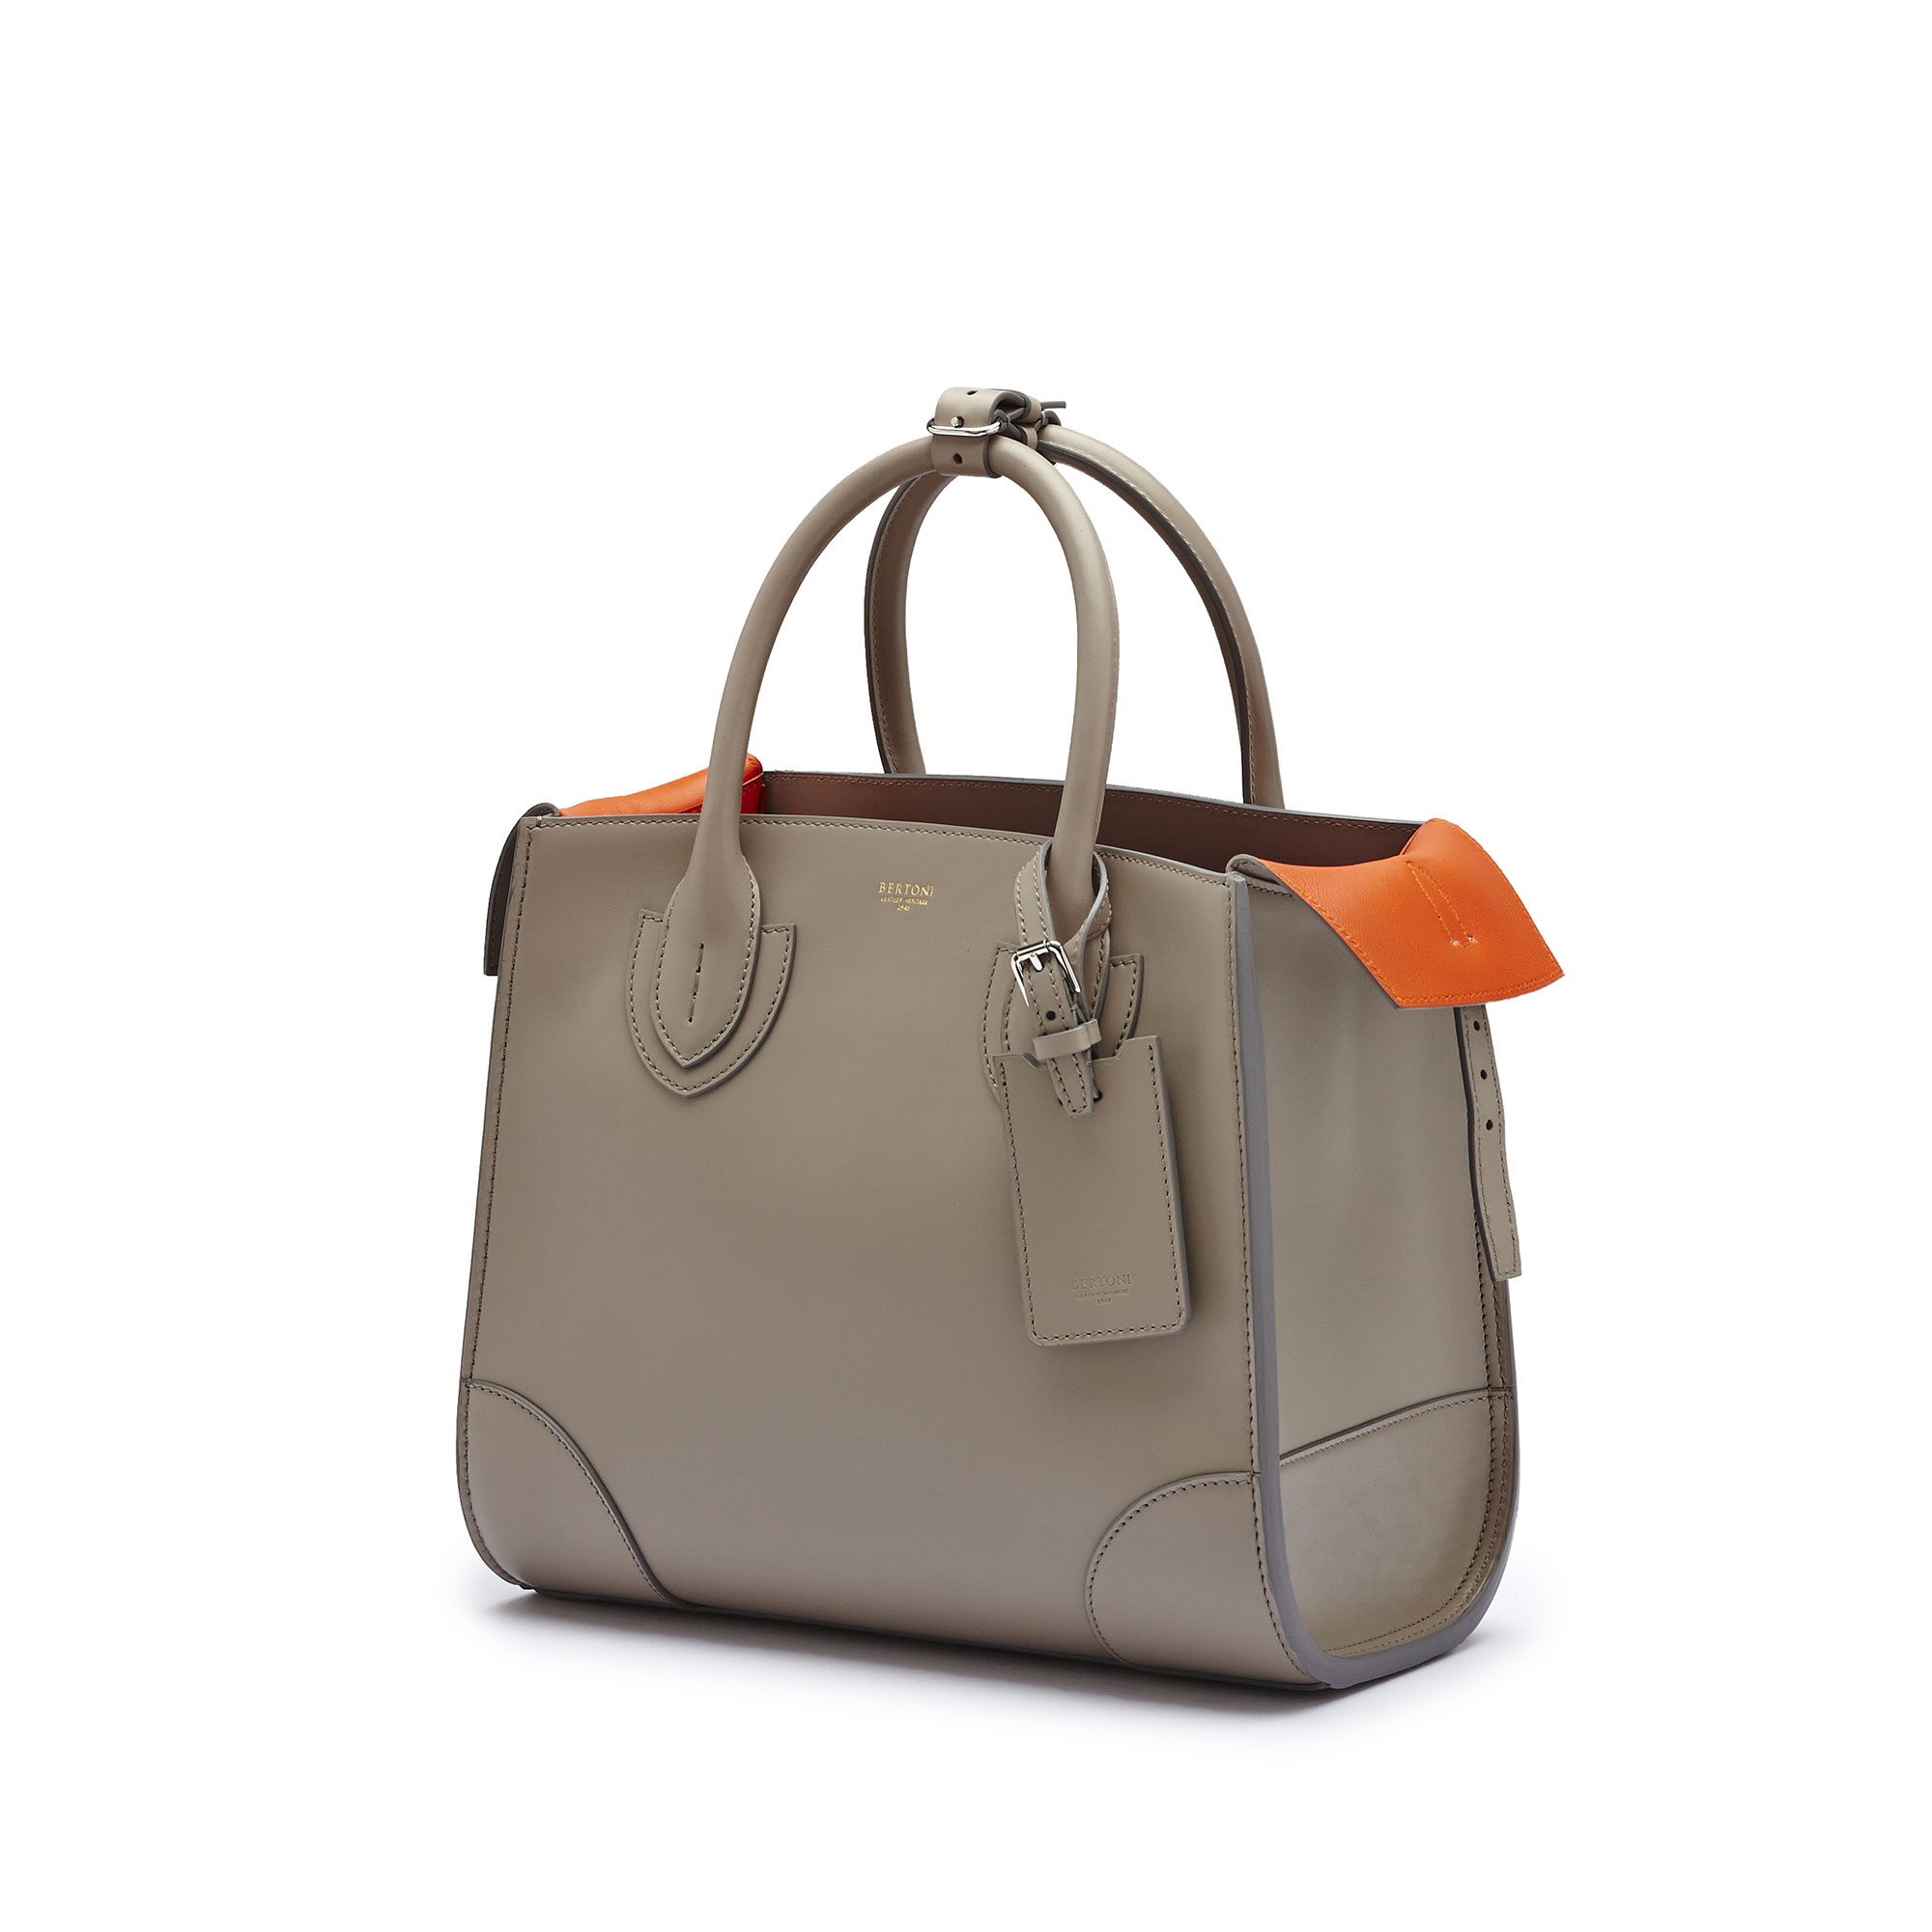 The taupe french calf Darcy medium bag by Bertoni 1949 04